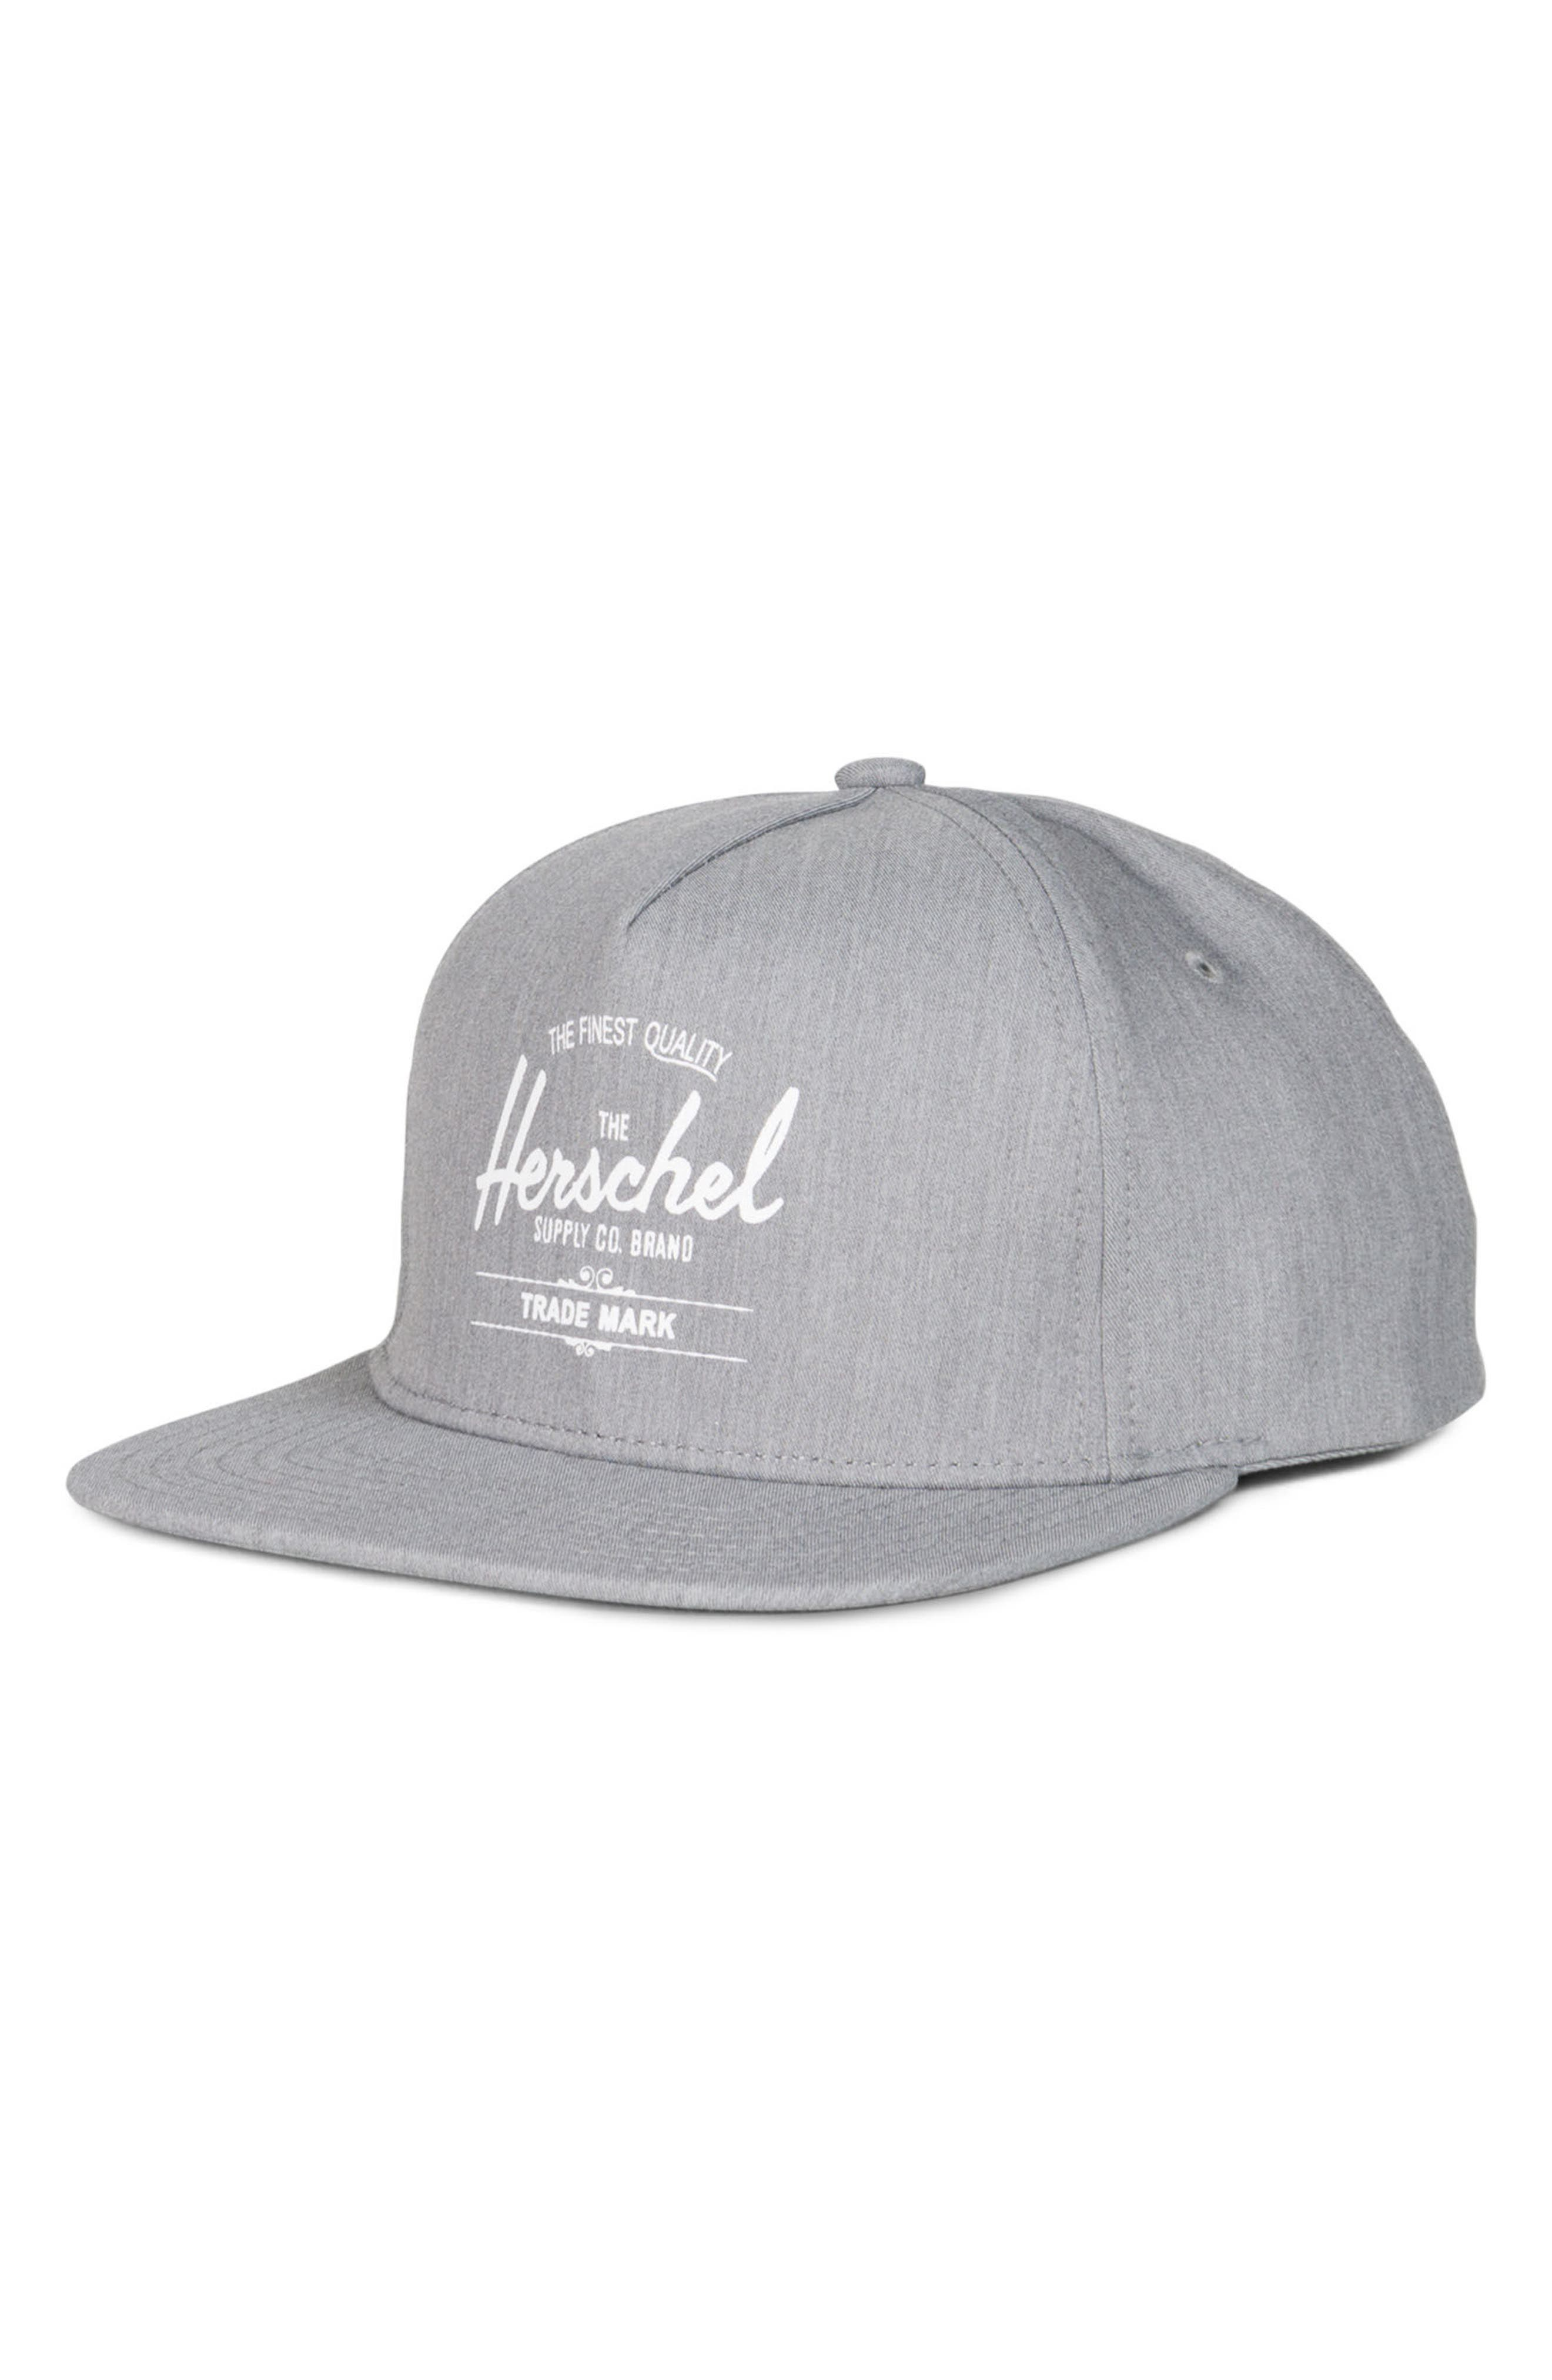 Alternate Image 1 Selected - Herschel Supply Co. Whaler Snapback Baseball Cap